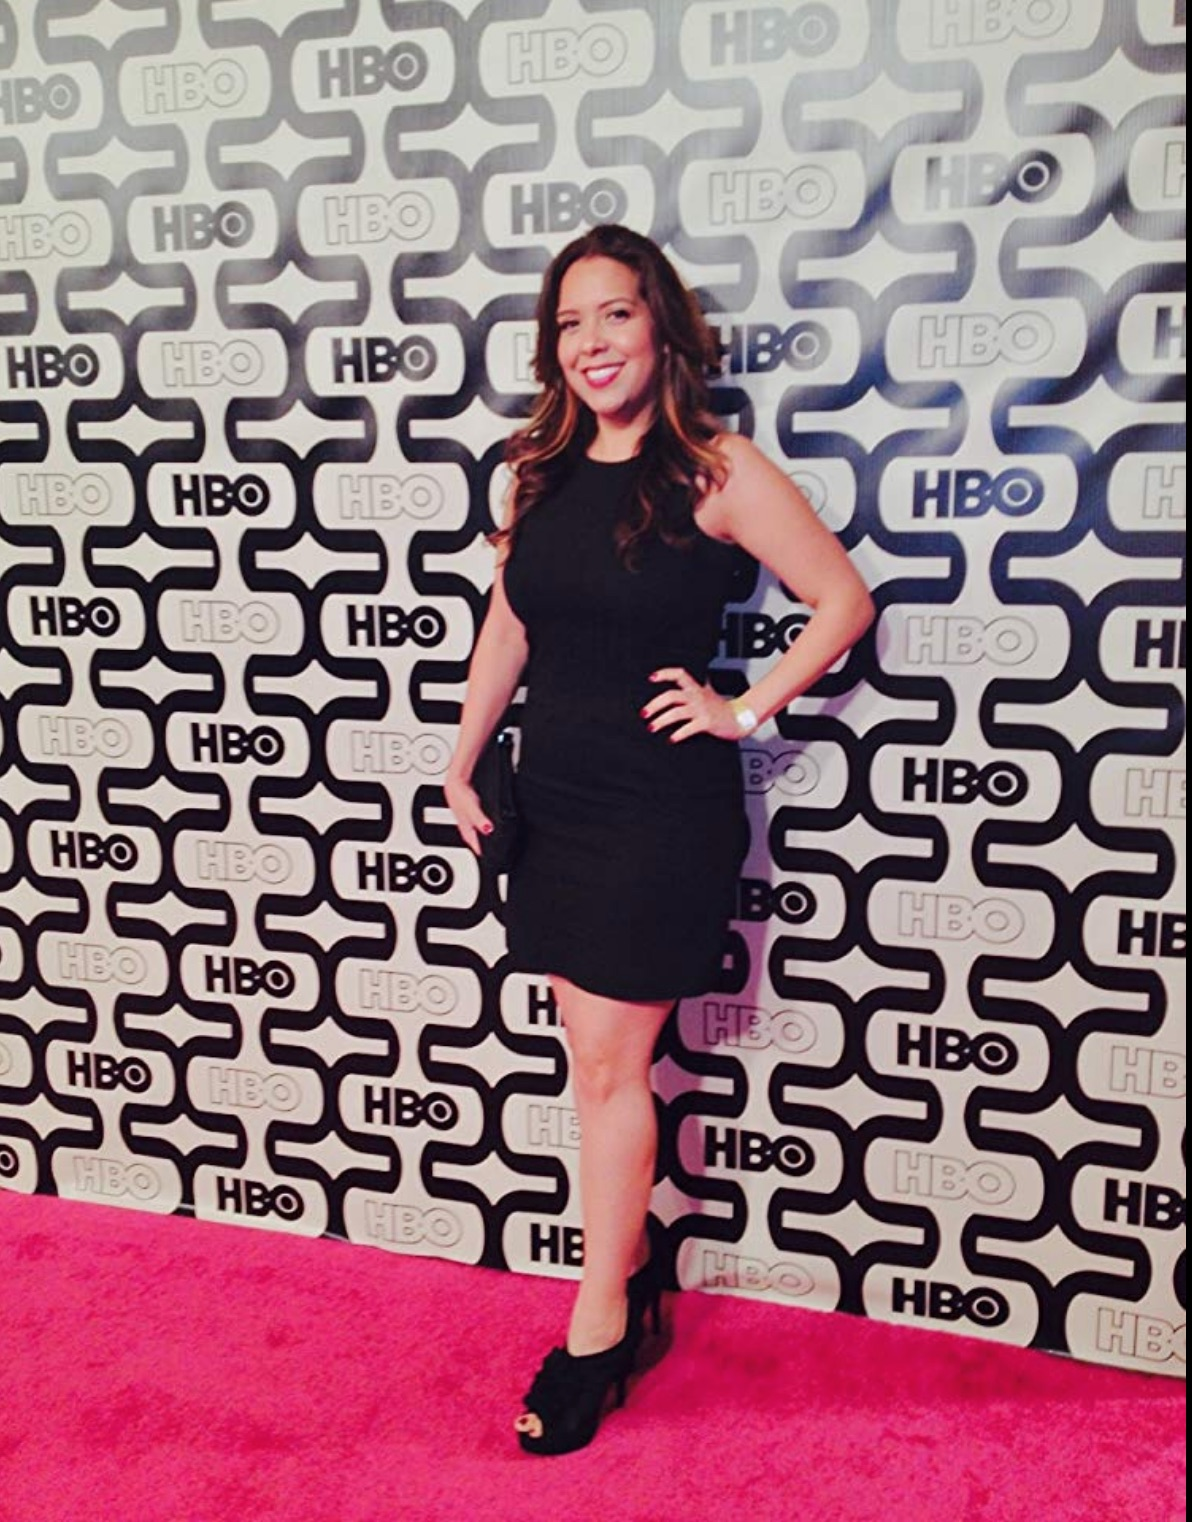 HBO party.jpg